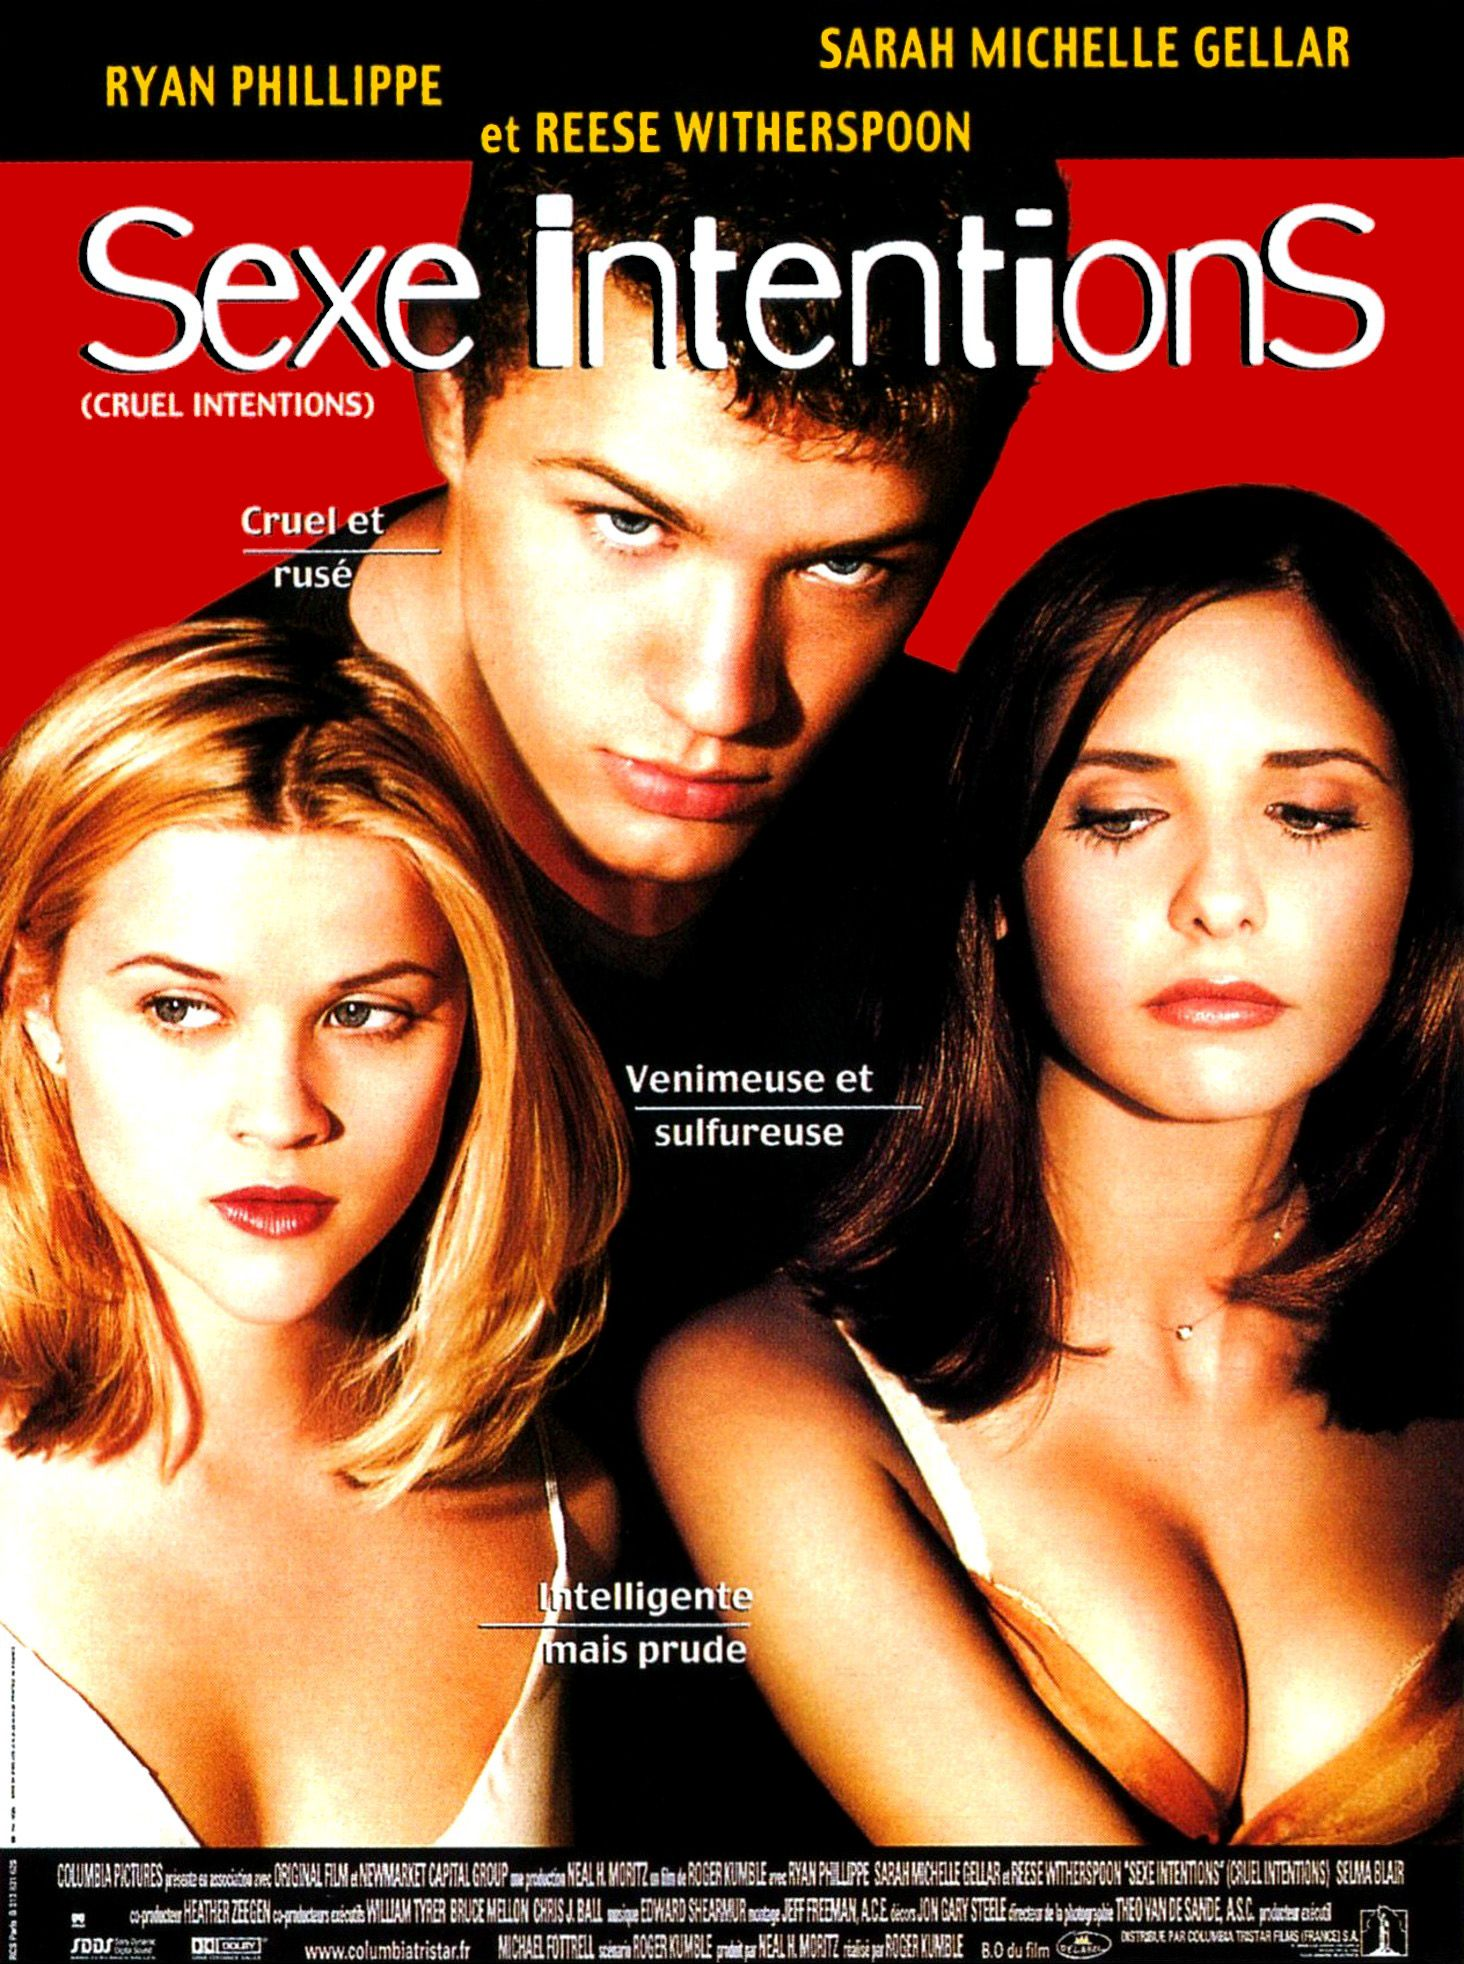 film sexe intention pression sexuelle